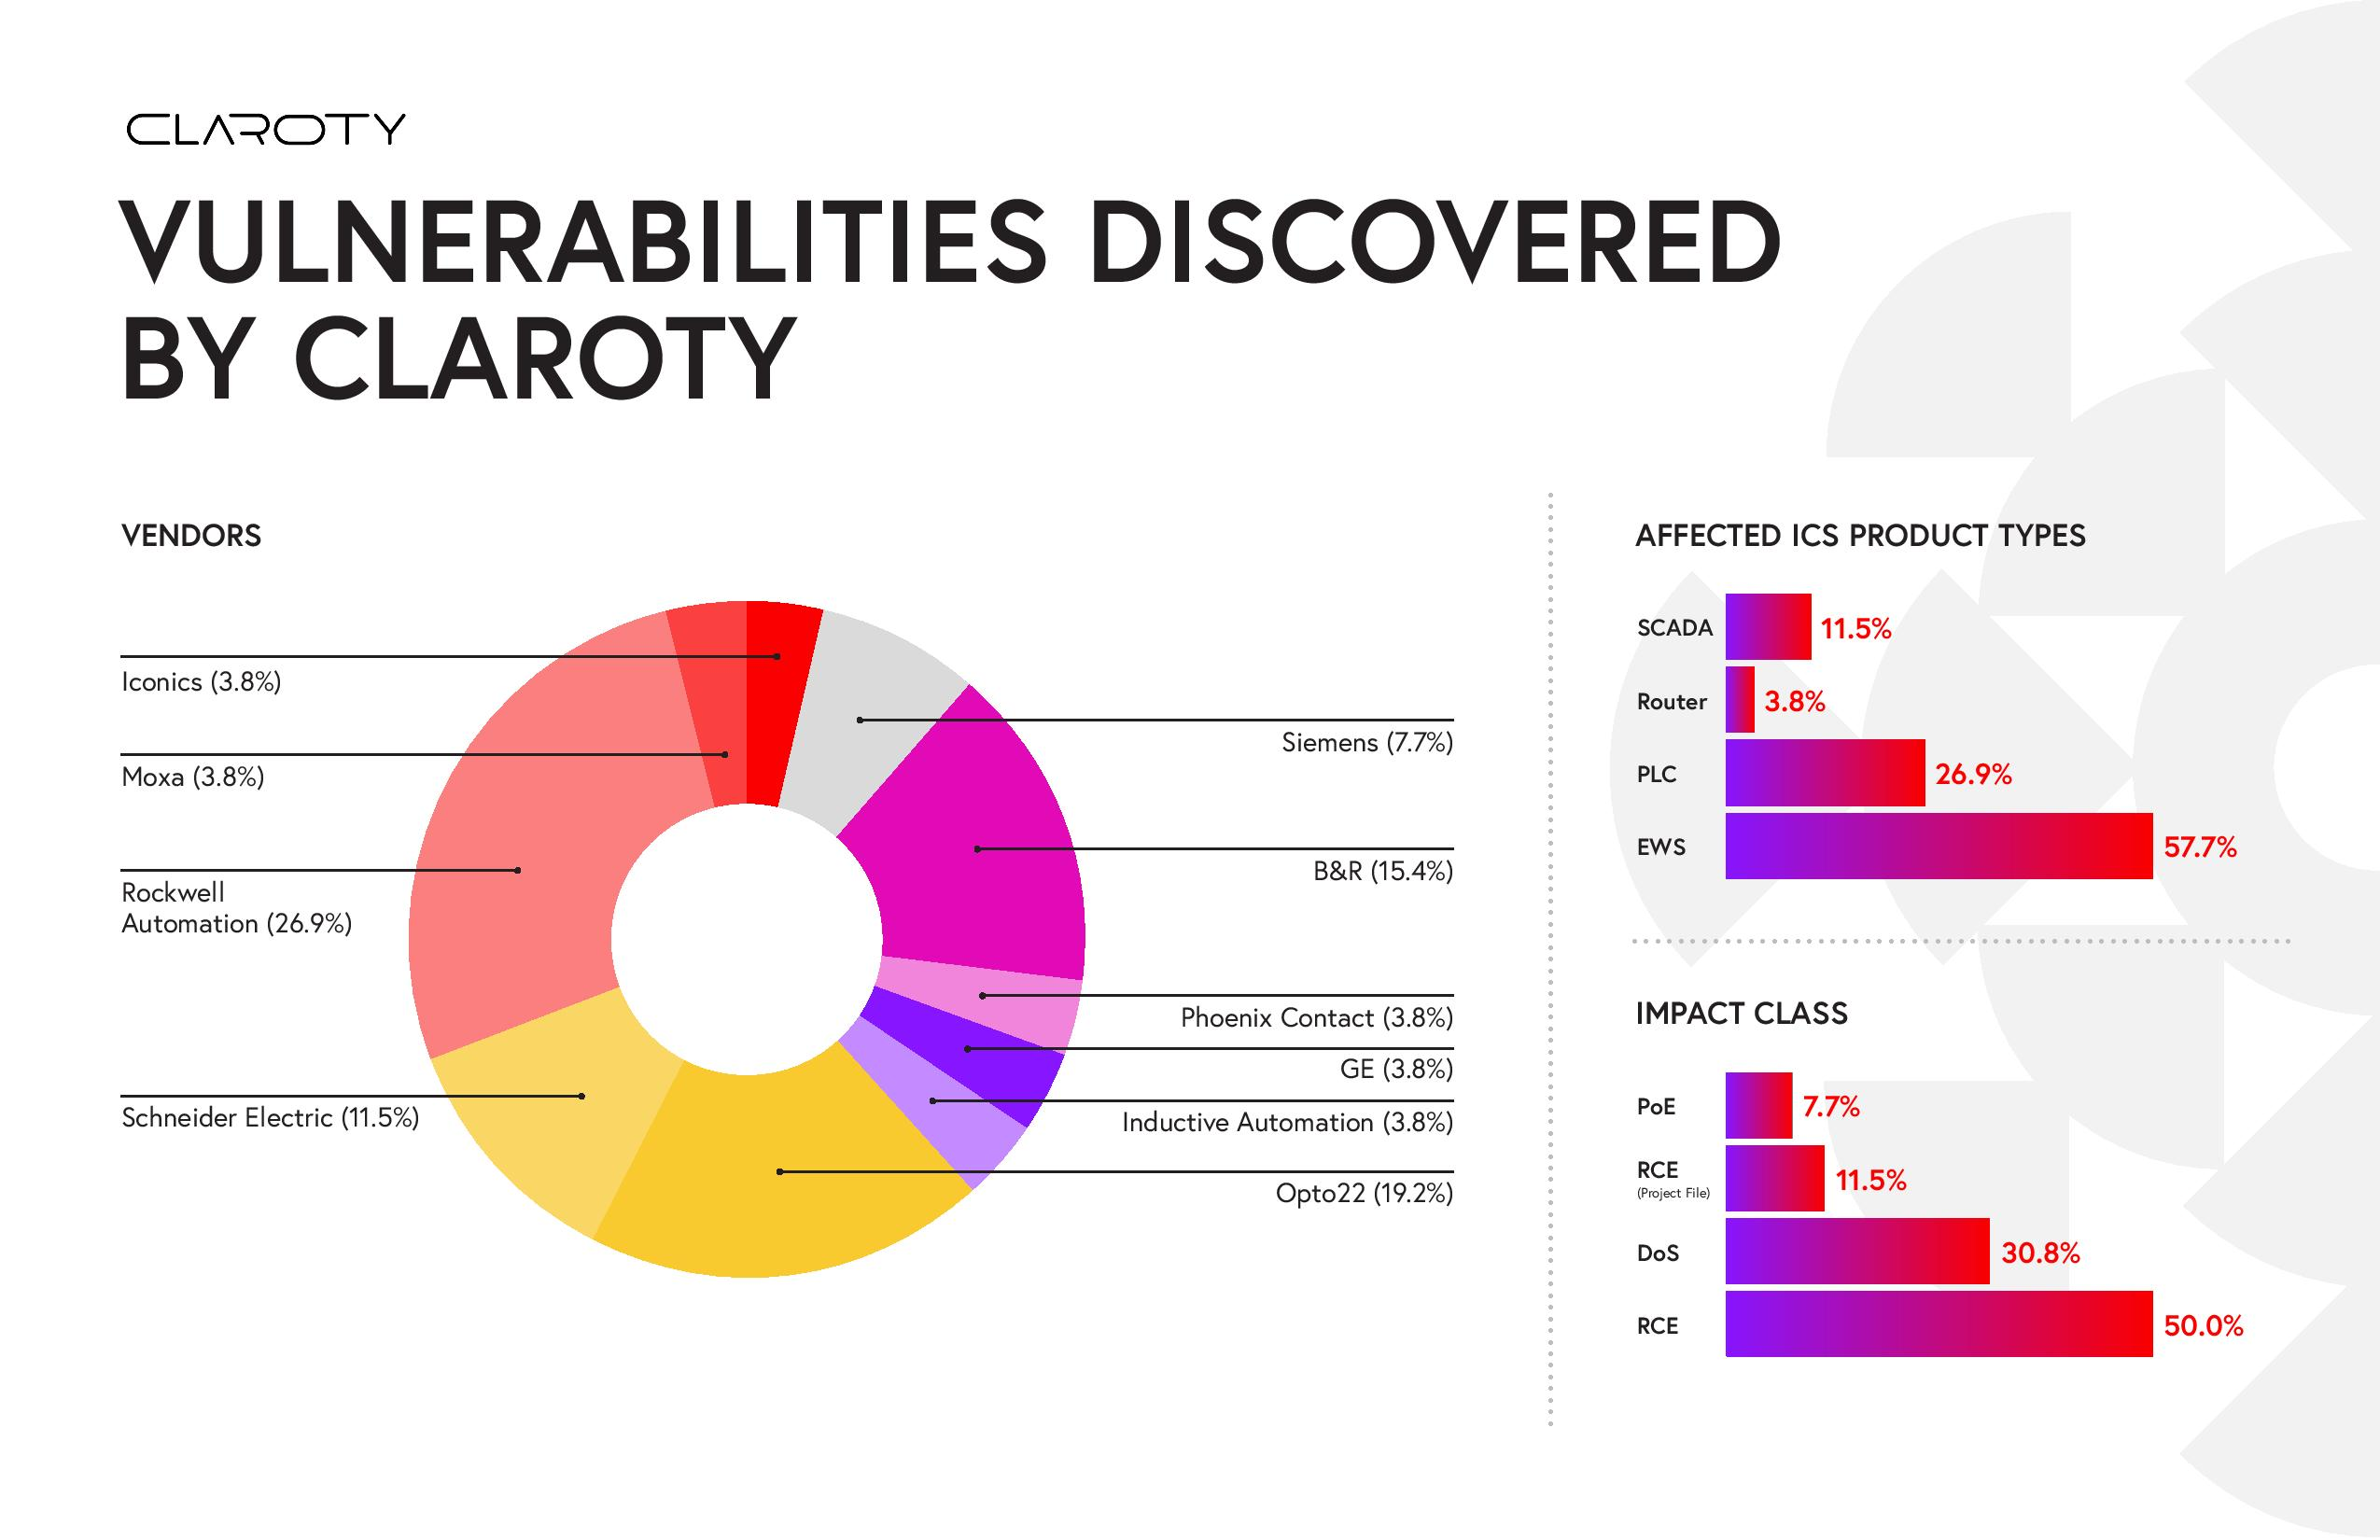 Claroty_Biannual_ICS_Risk_Vulnerability_Infographic_v01-page-002.jpg